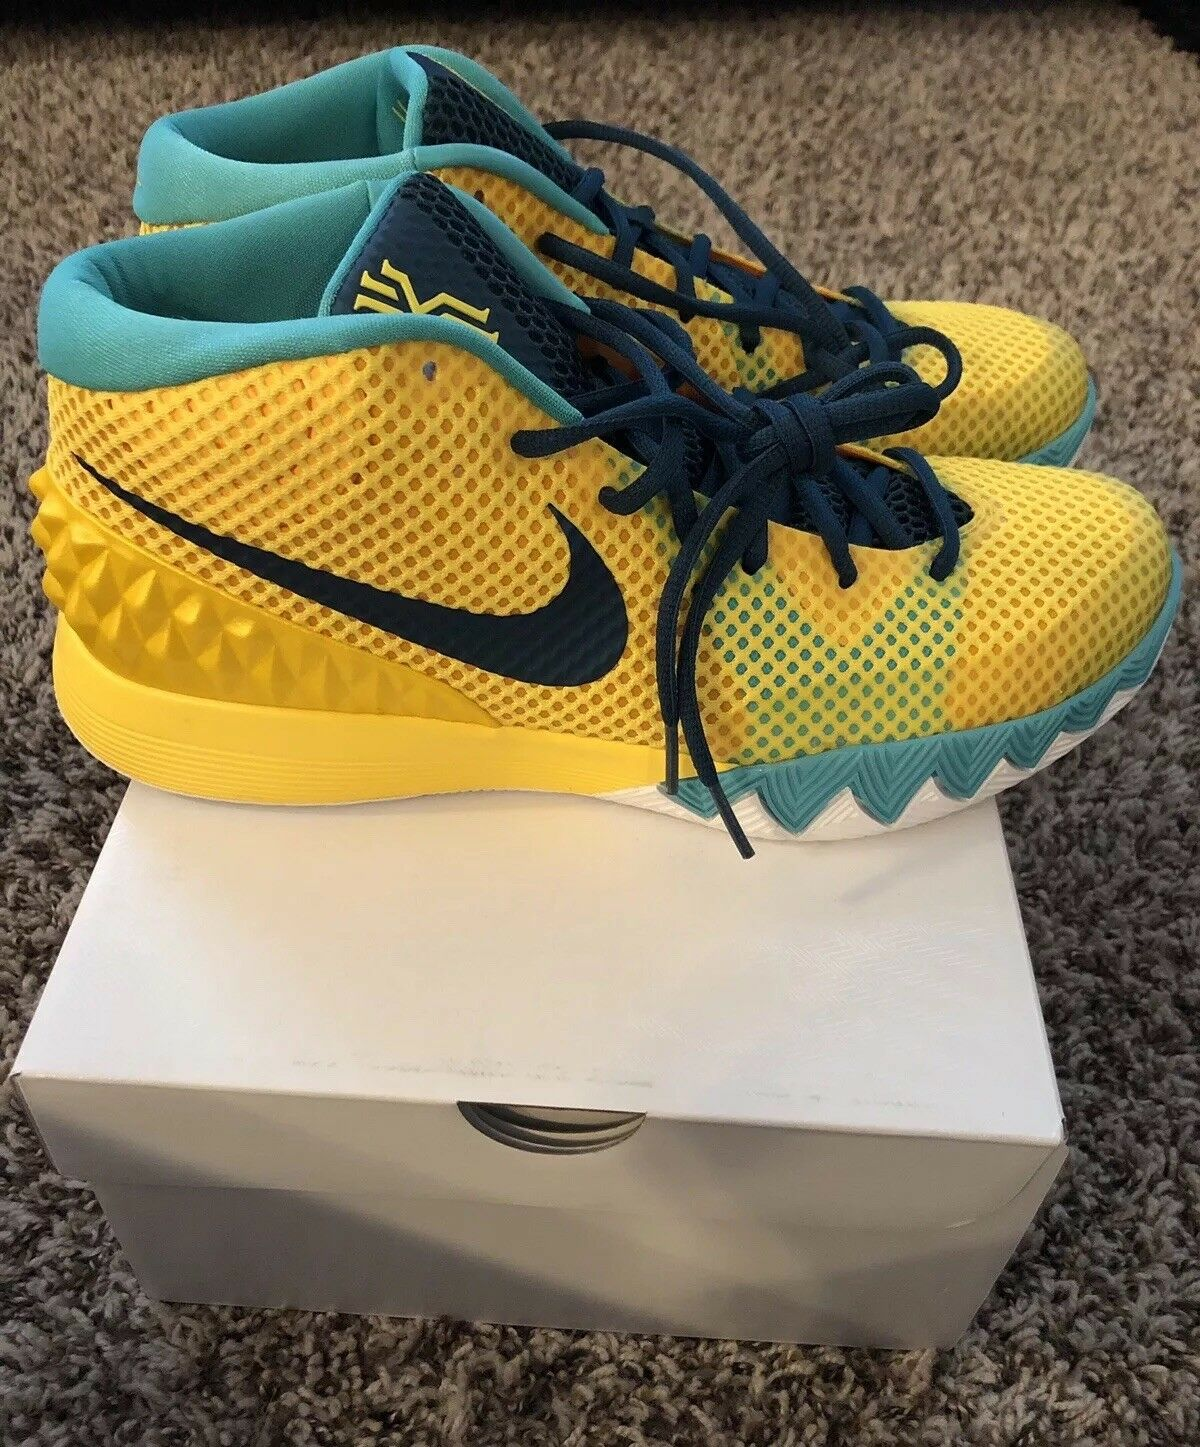 Nike Kyrie 1 Letterman 705277-737 Men's Size 10.5 Yellow Teal Kyrie Irving